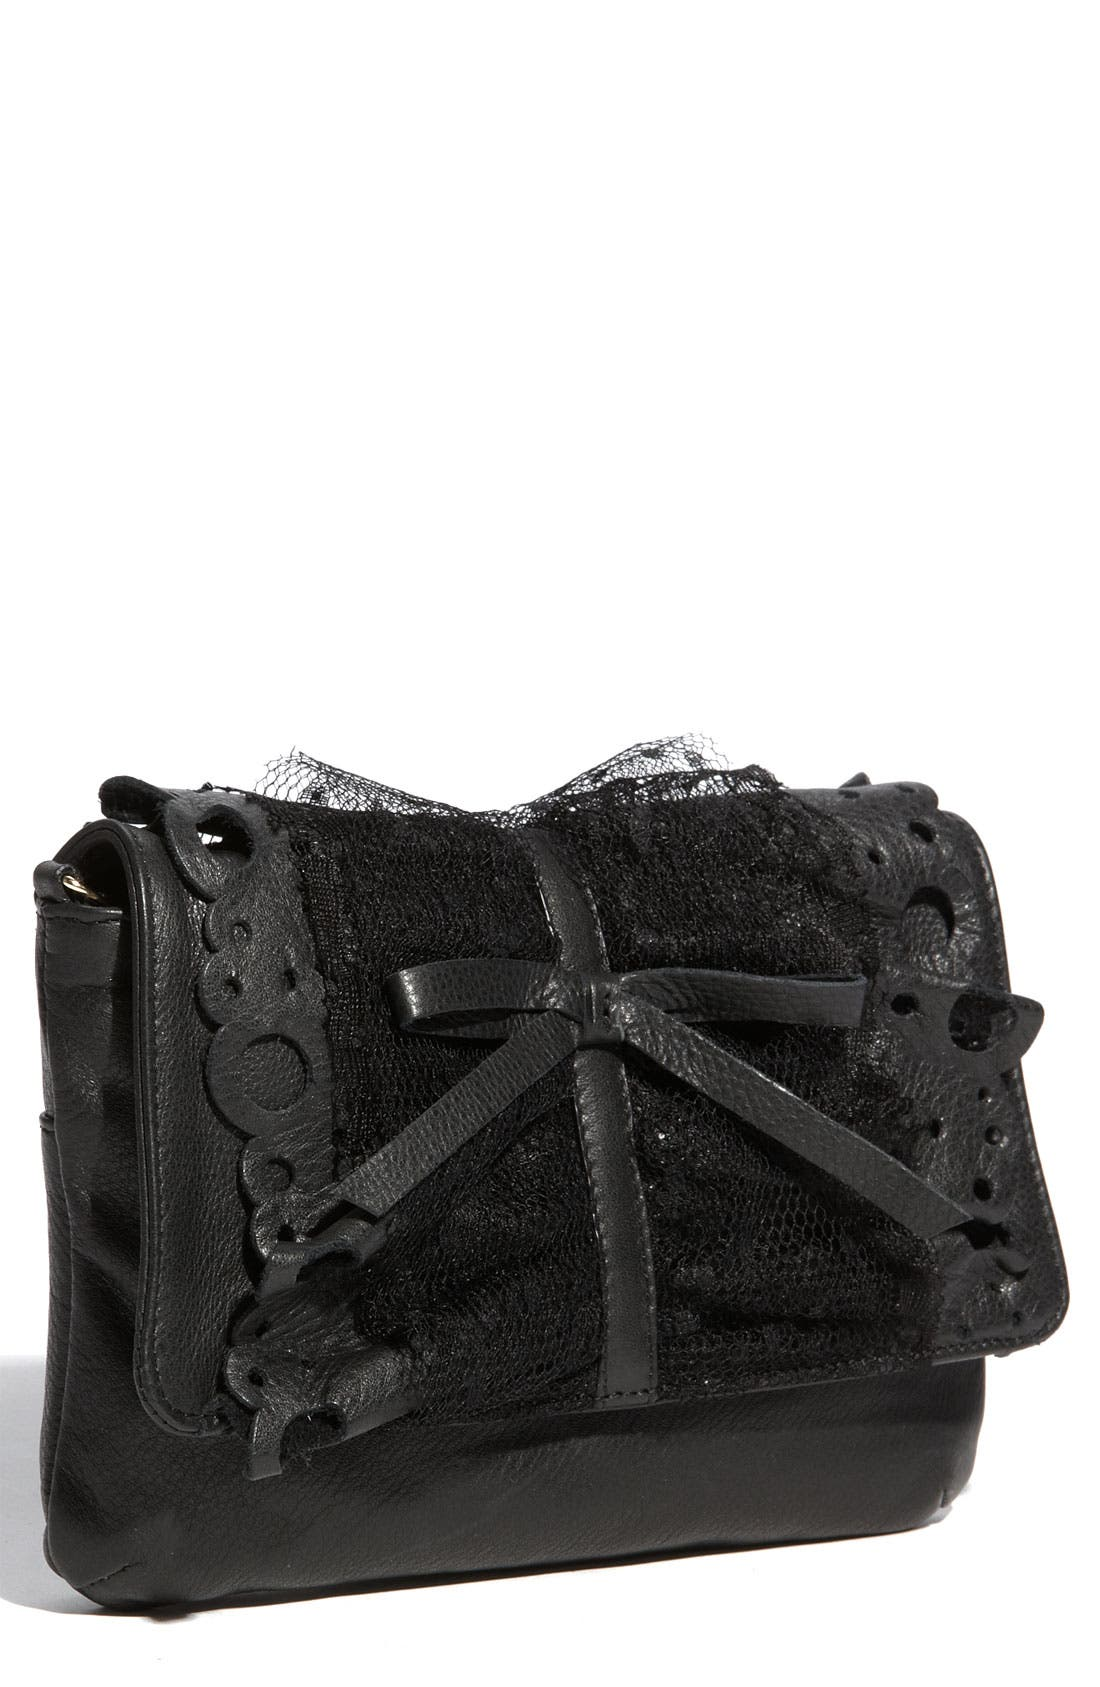 Main Image - RED Valentino 'Lace Ruffle' Clutch